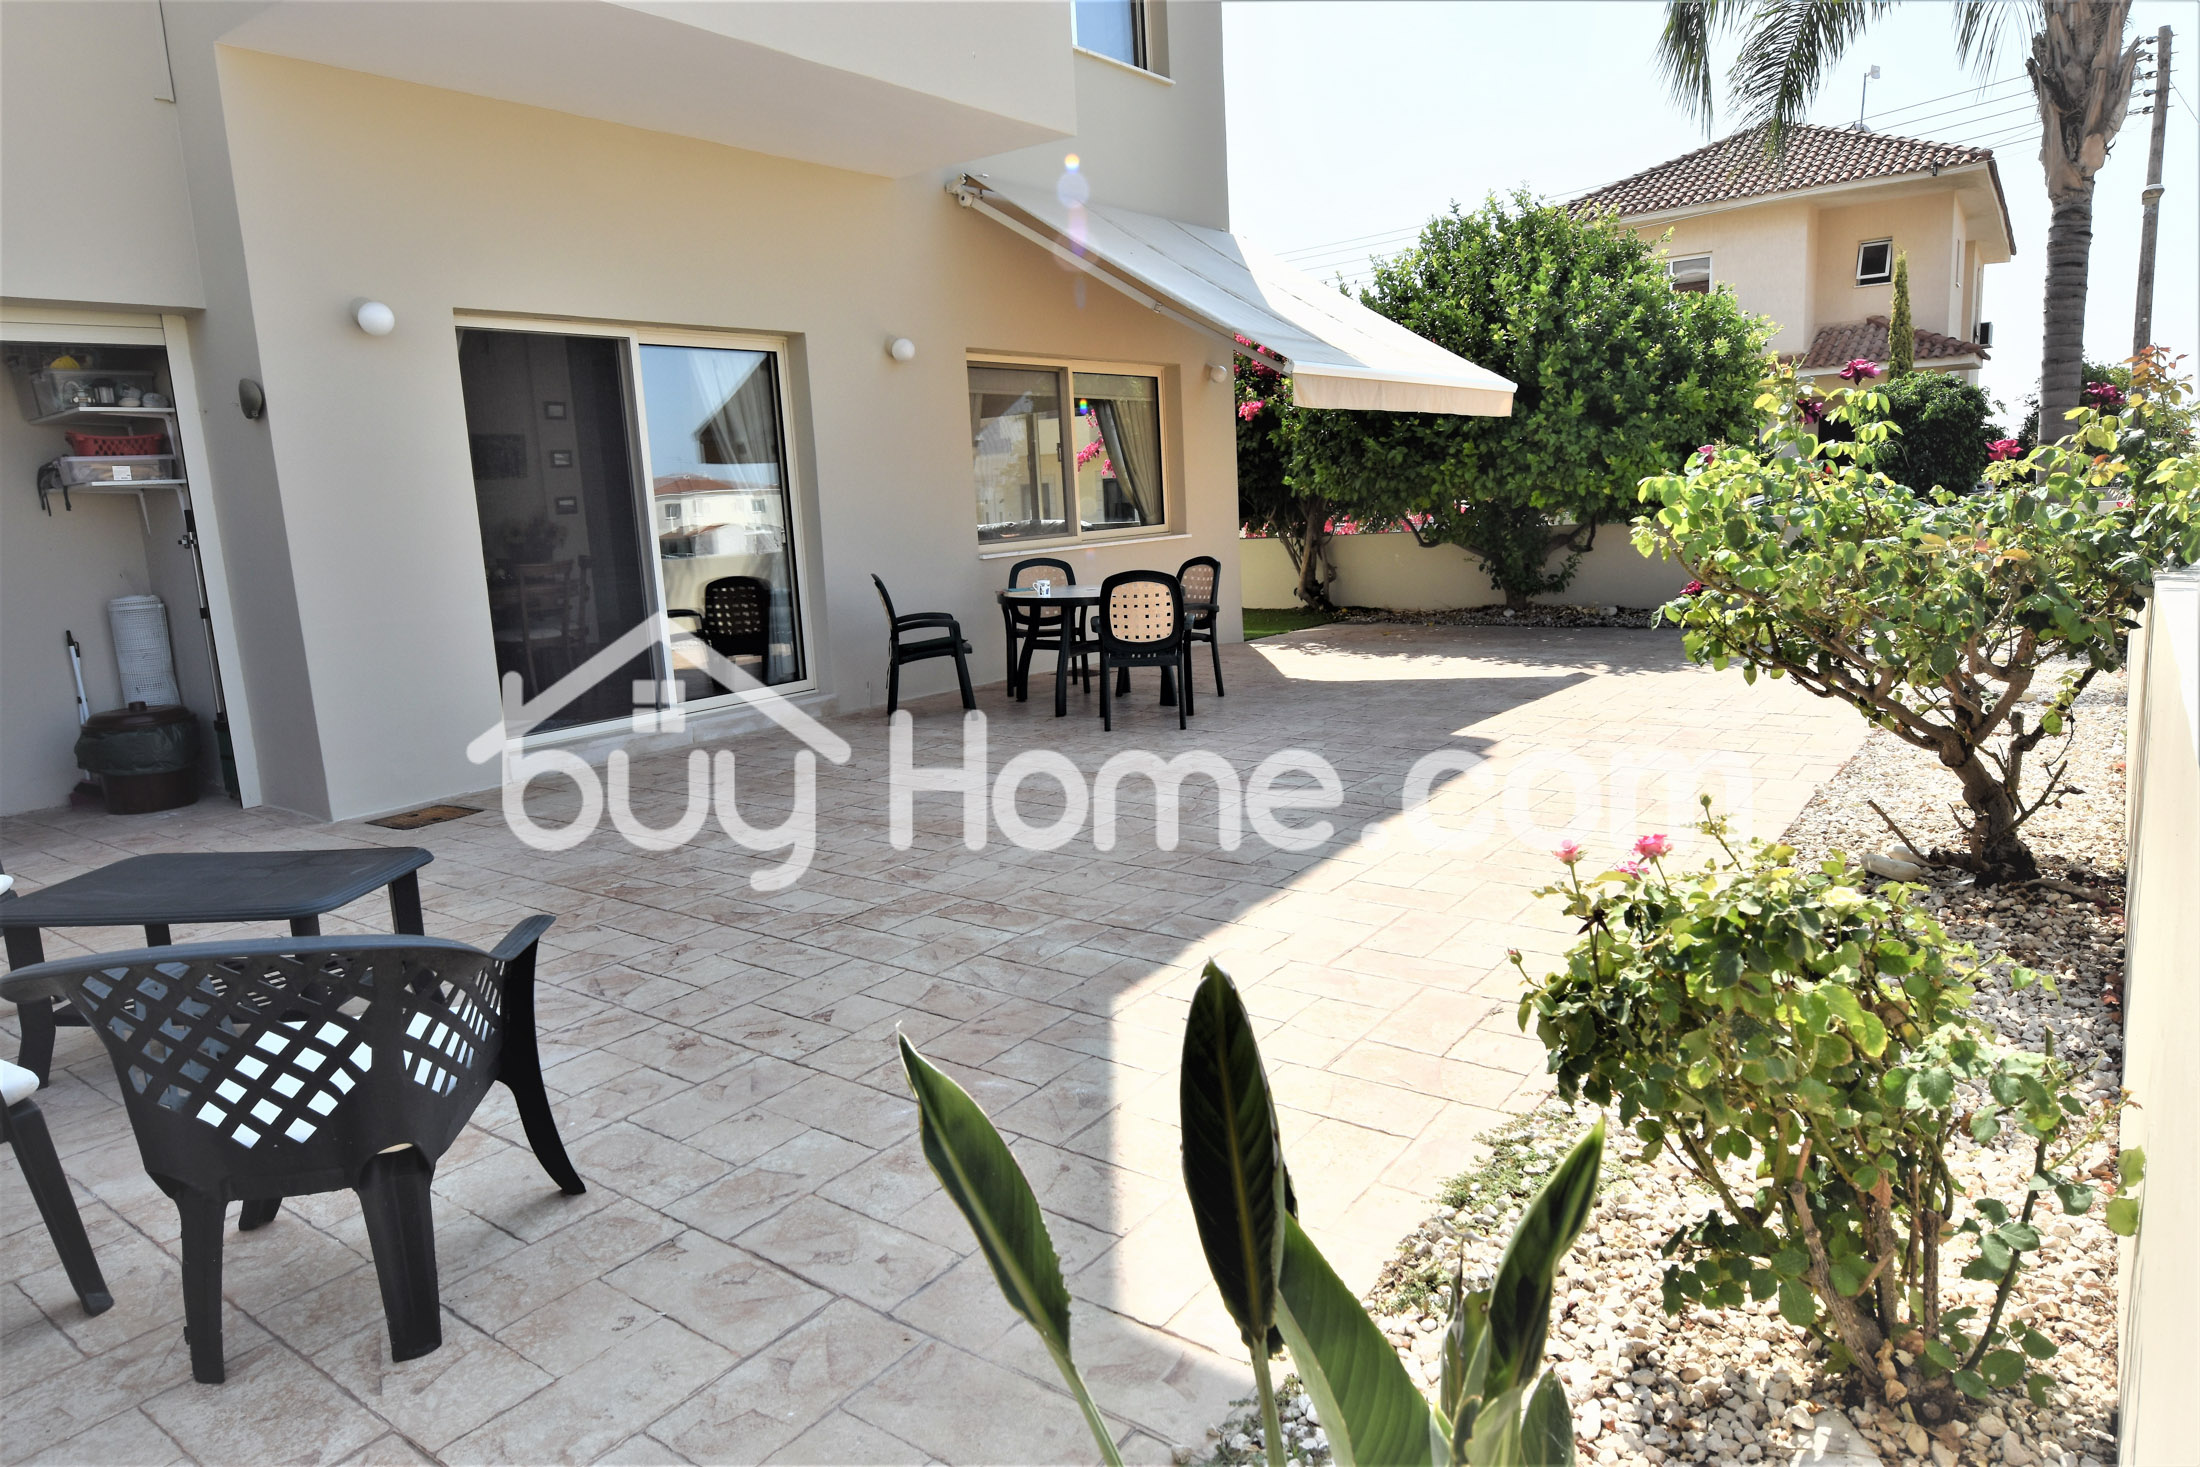 Impressive 3 Bed House | BuyHome